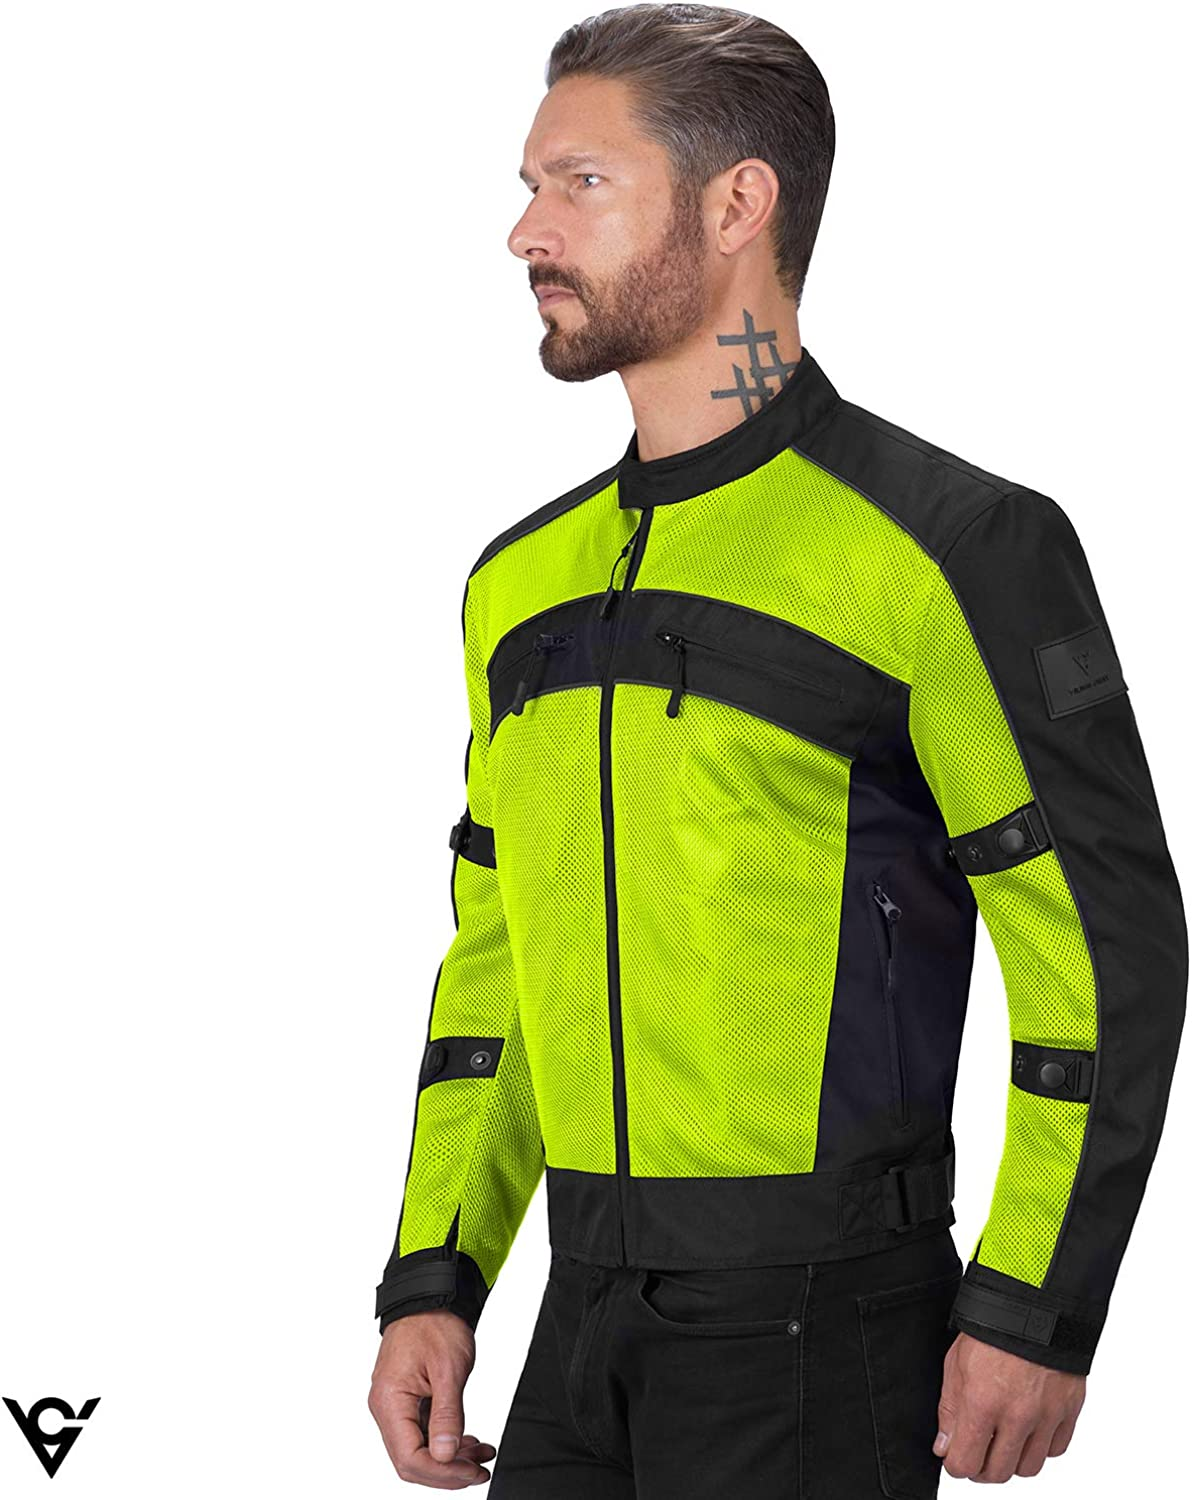 CE Approved Breathable Armor for Bikers Adjustable Viking Cycle Ironside Textile Mesh Motorcycle Jacket for Men